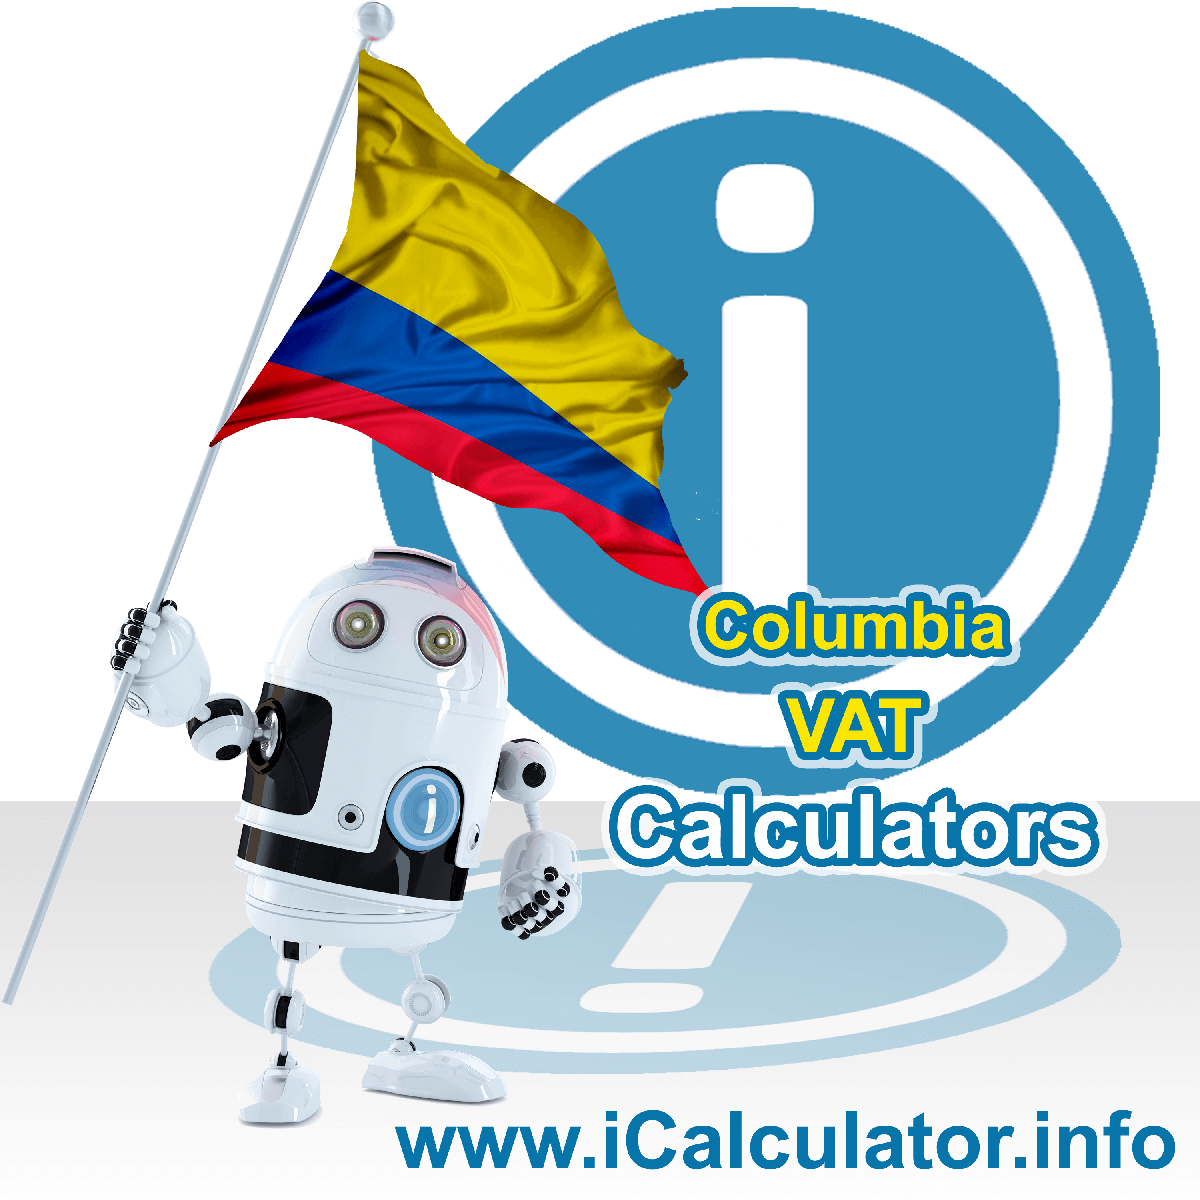 Colombia VAT Calculator. This image shows the Colombia flag and information relating to the VAT formula used for calculating Value Added Tax in Colombia using the Colombia VAT Calculator in 2020